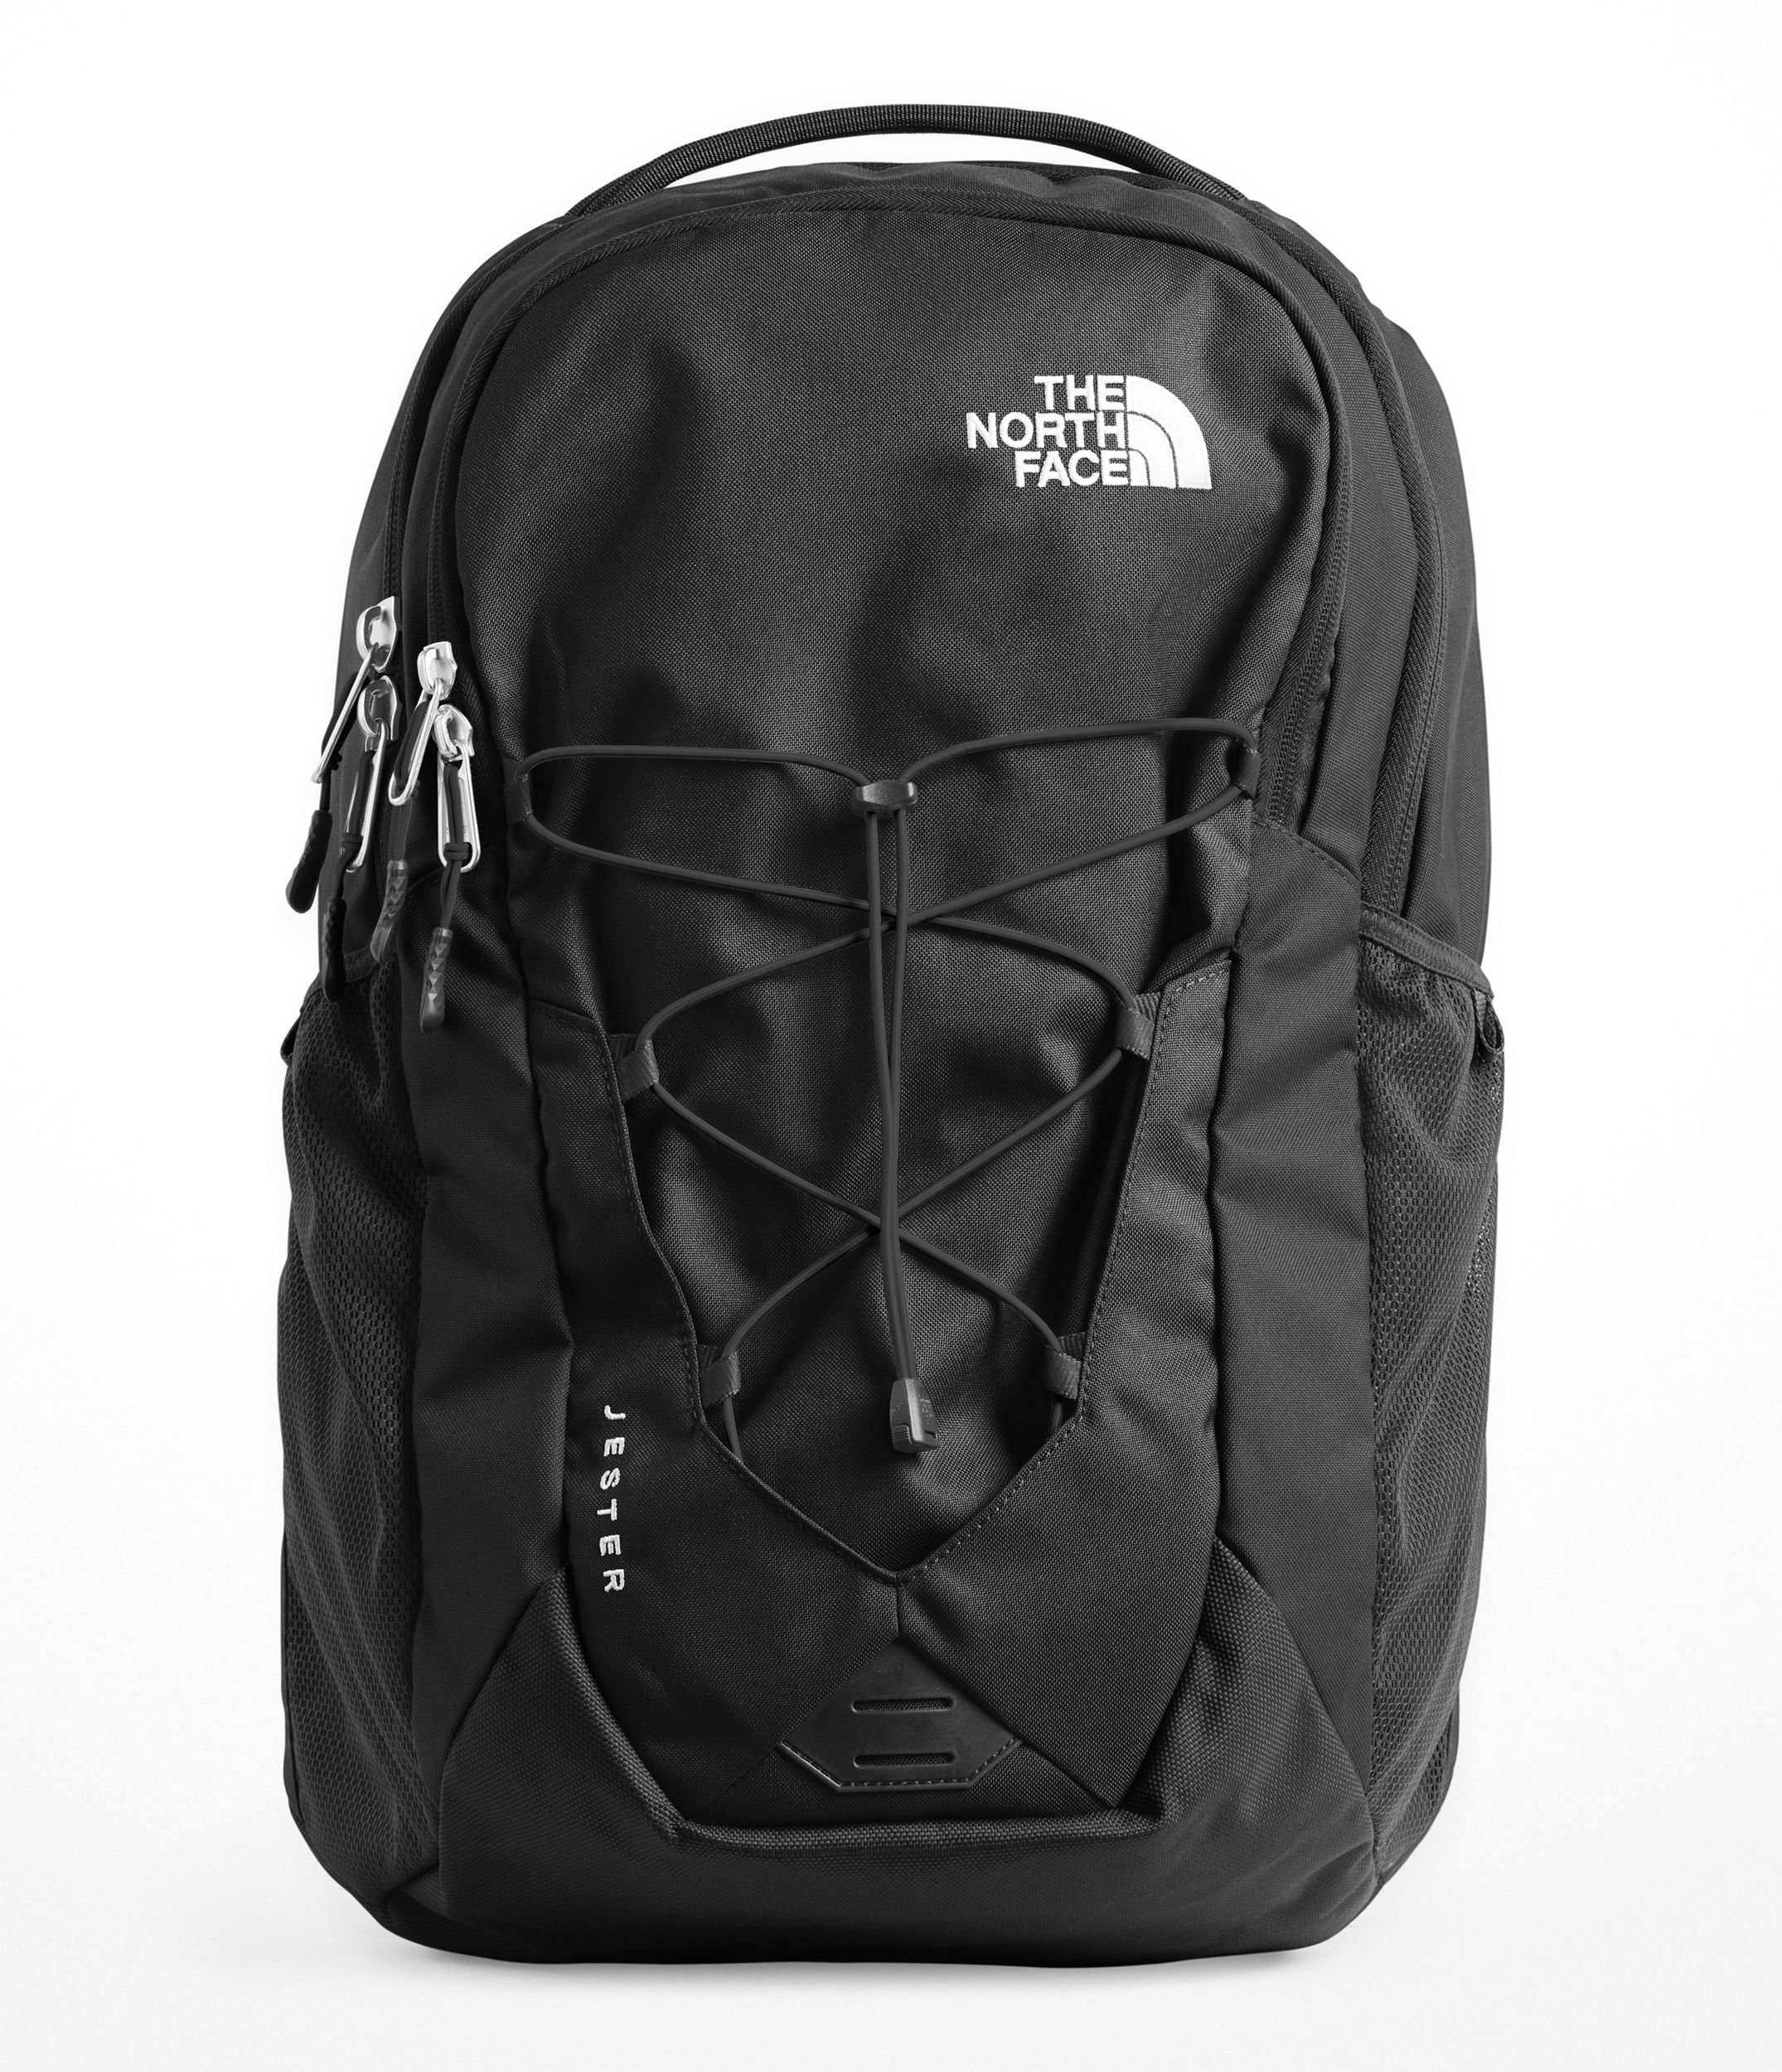 The North Face Unisex Jester Backpack Tnk Black One Size